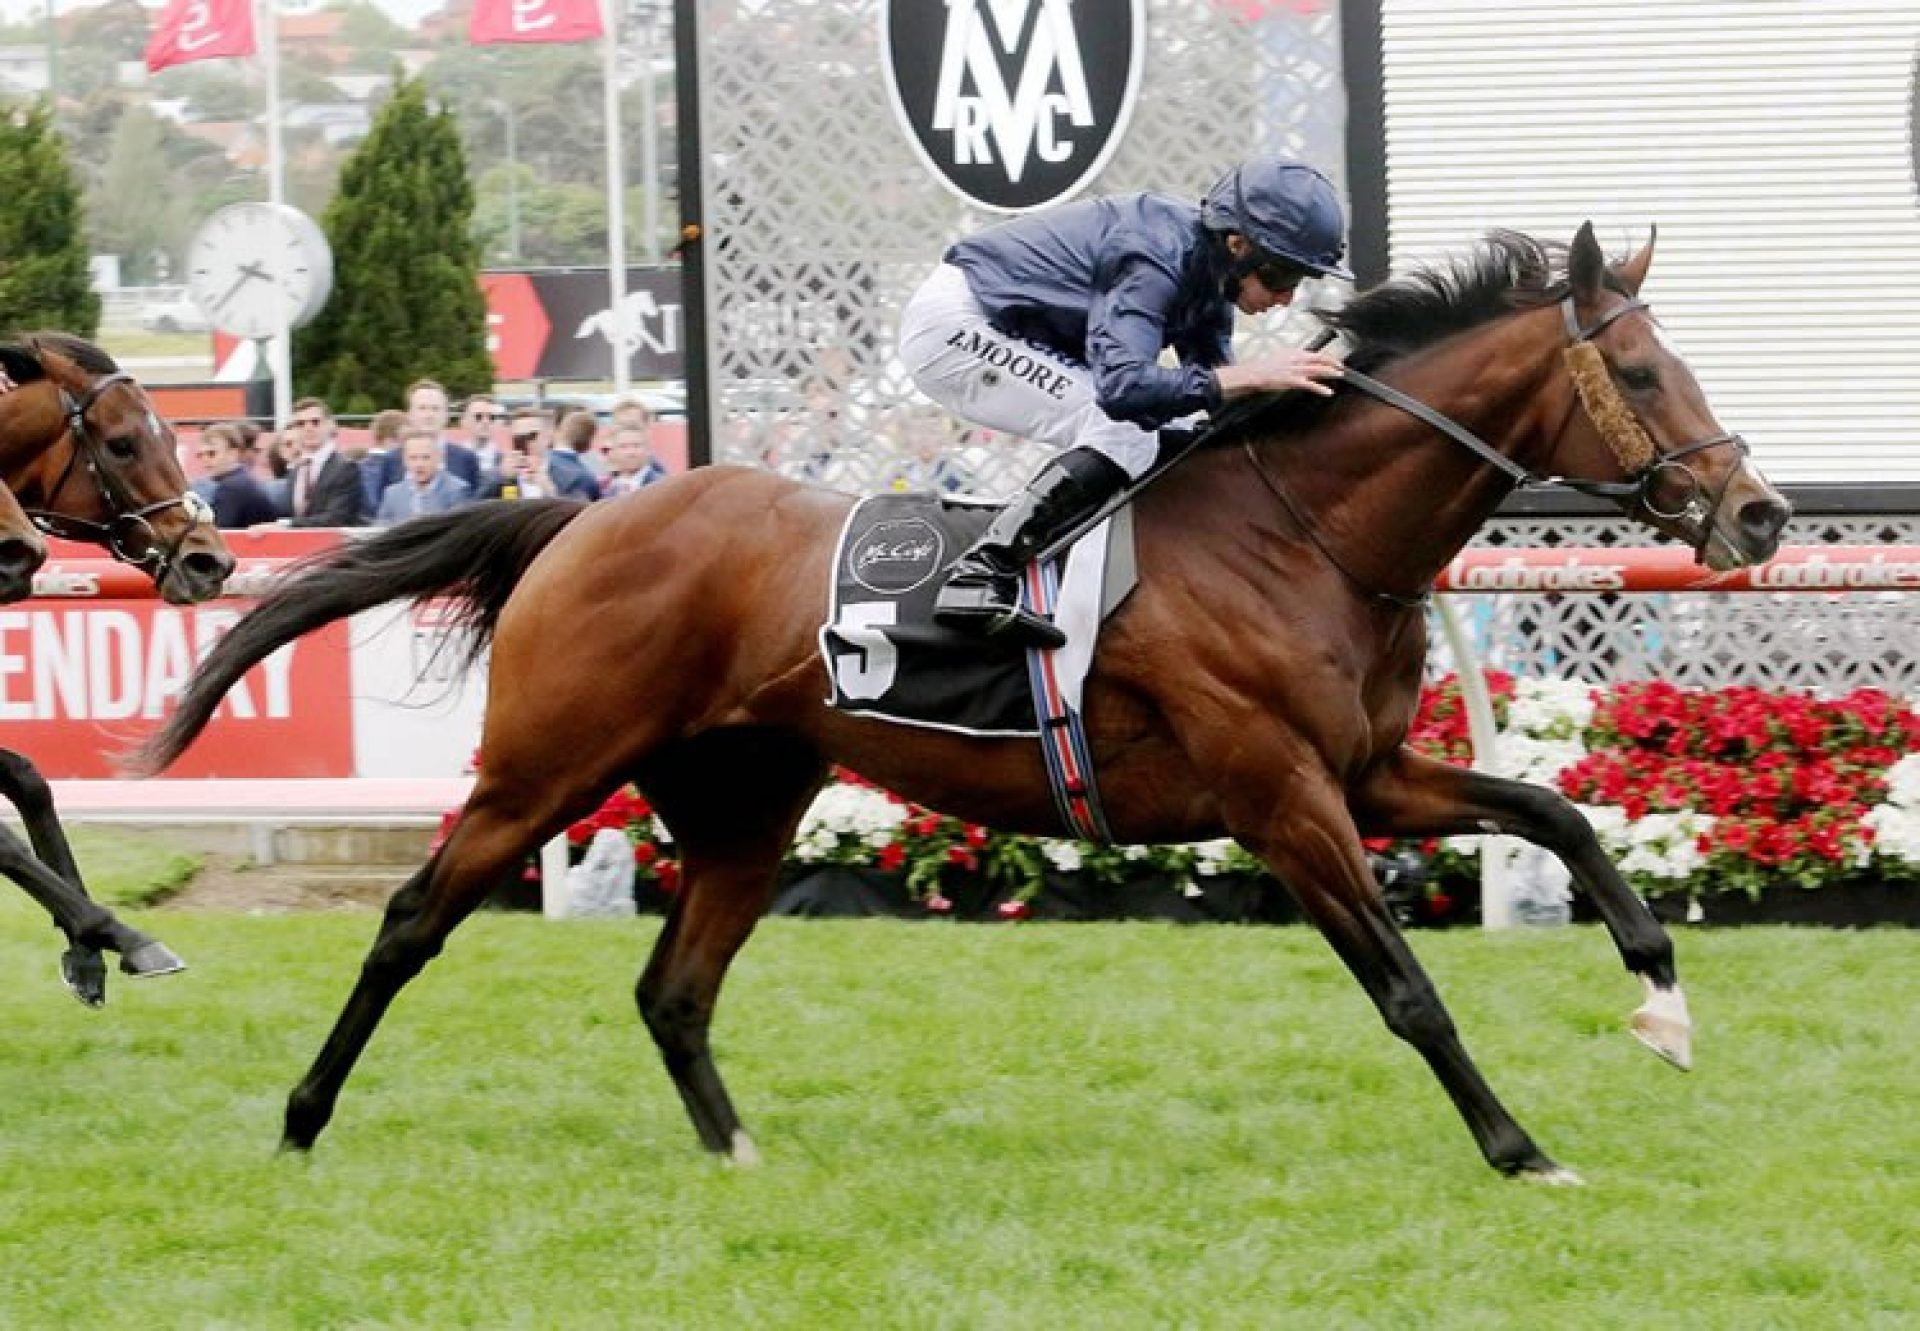 Hunting Horn (Camelot) winning the Gr.2 MVRC Moonee Valley Gold Cup